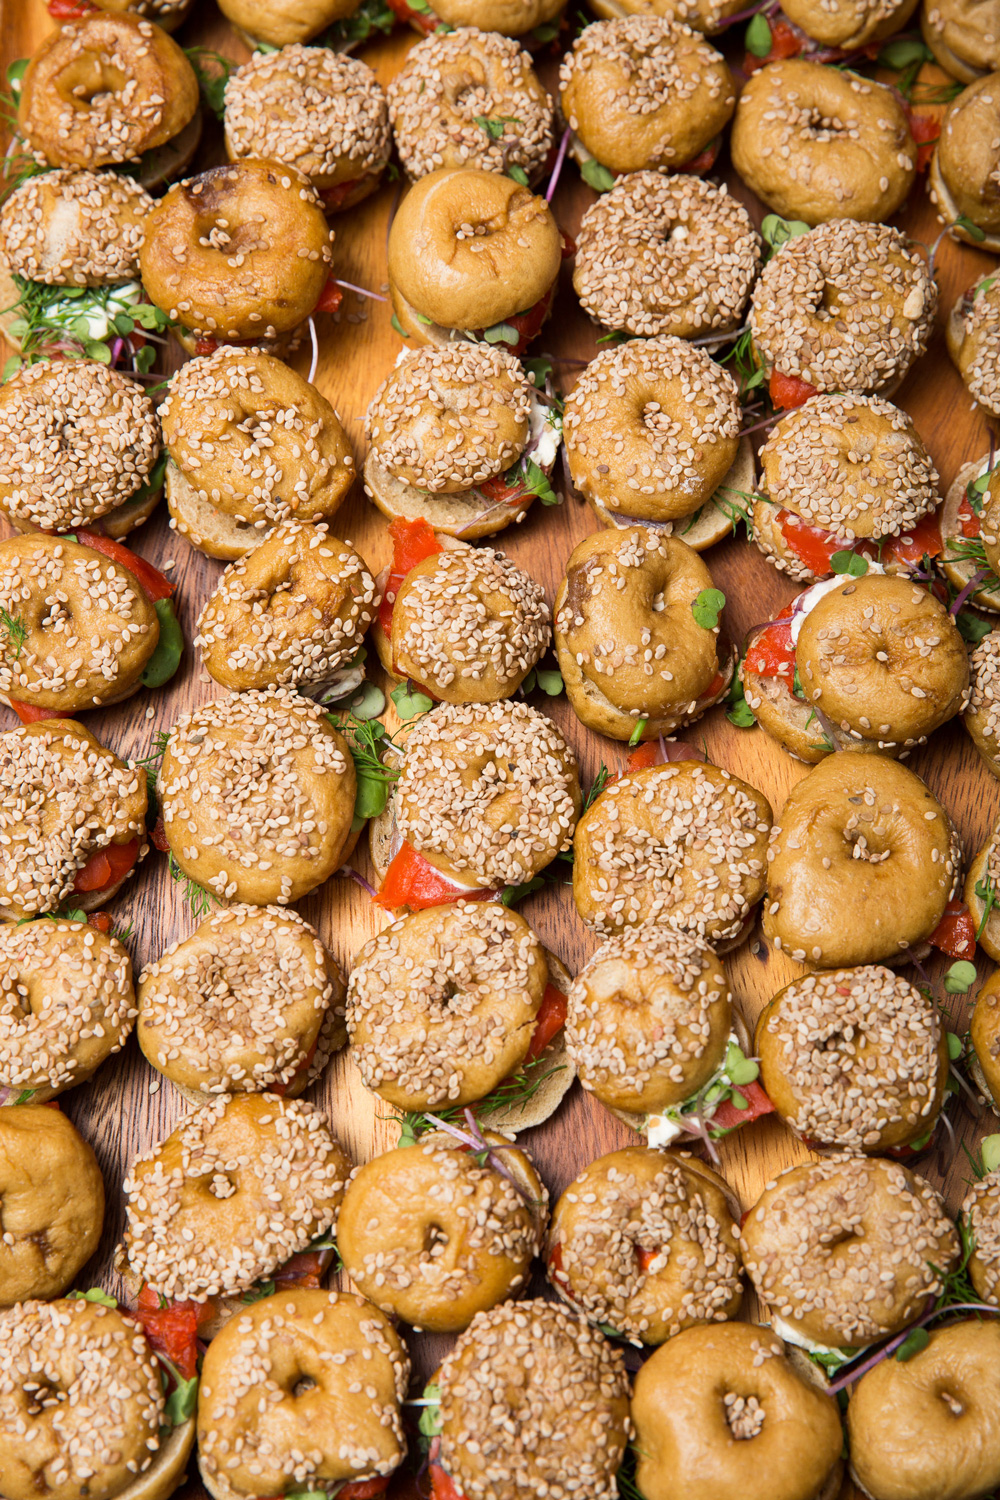 ny-food-film-fest-mini-bagel-sandwich.jpg